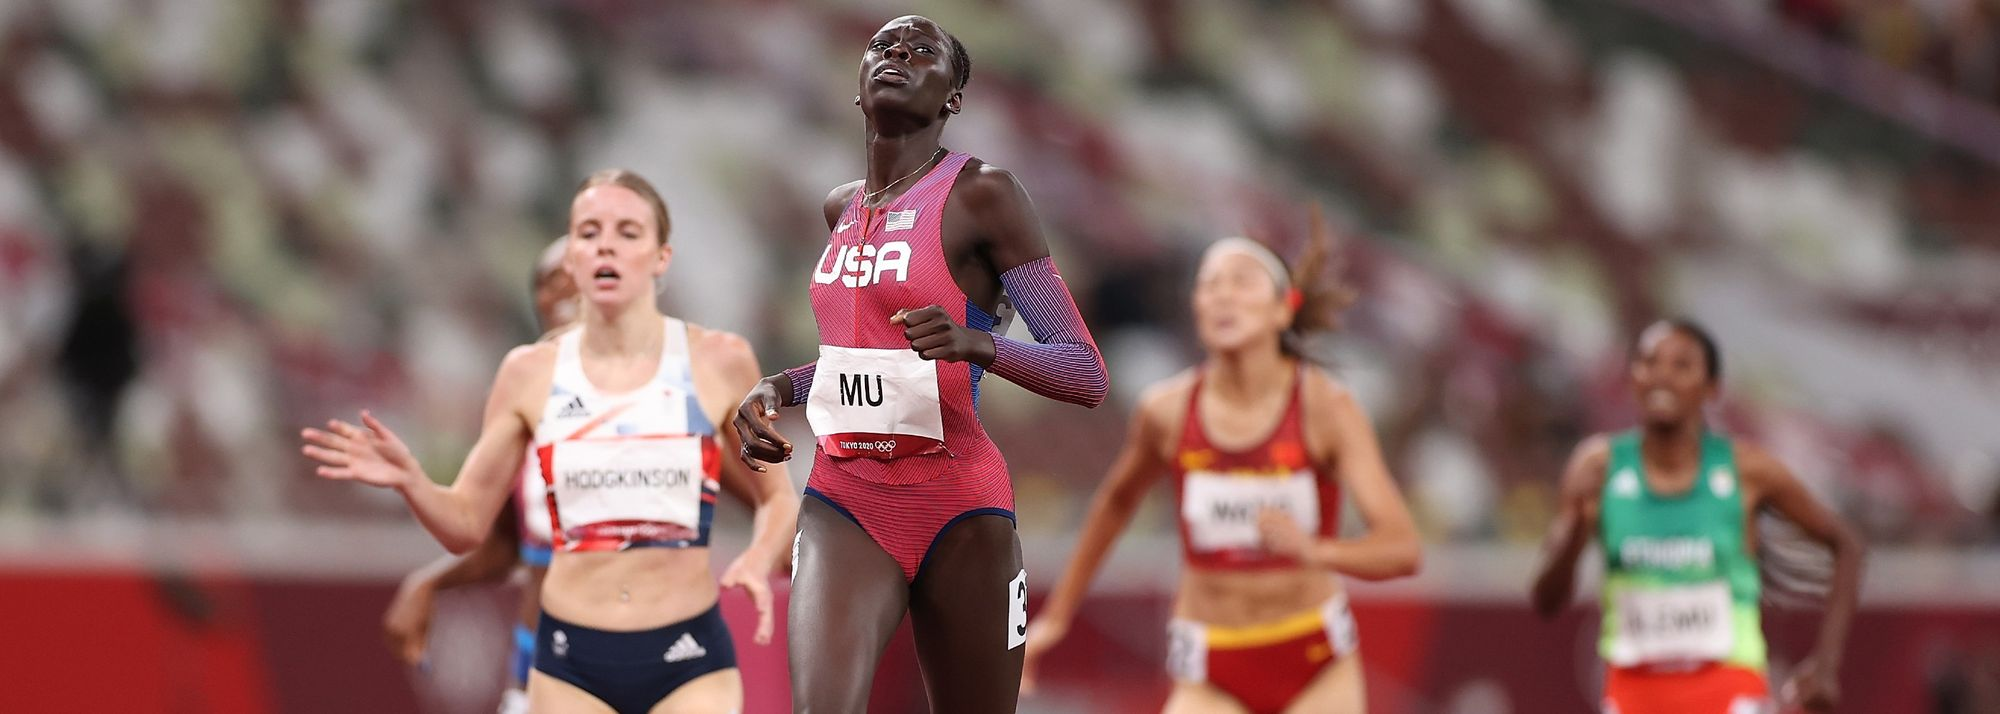 For 19-year-old US sensation Athing Mu, winning the Olympic gold medal in the women's 800m was just what she expected of herself all along.